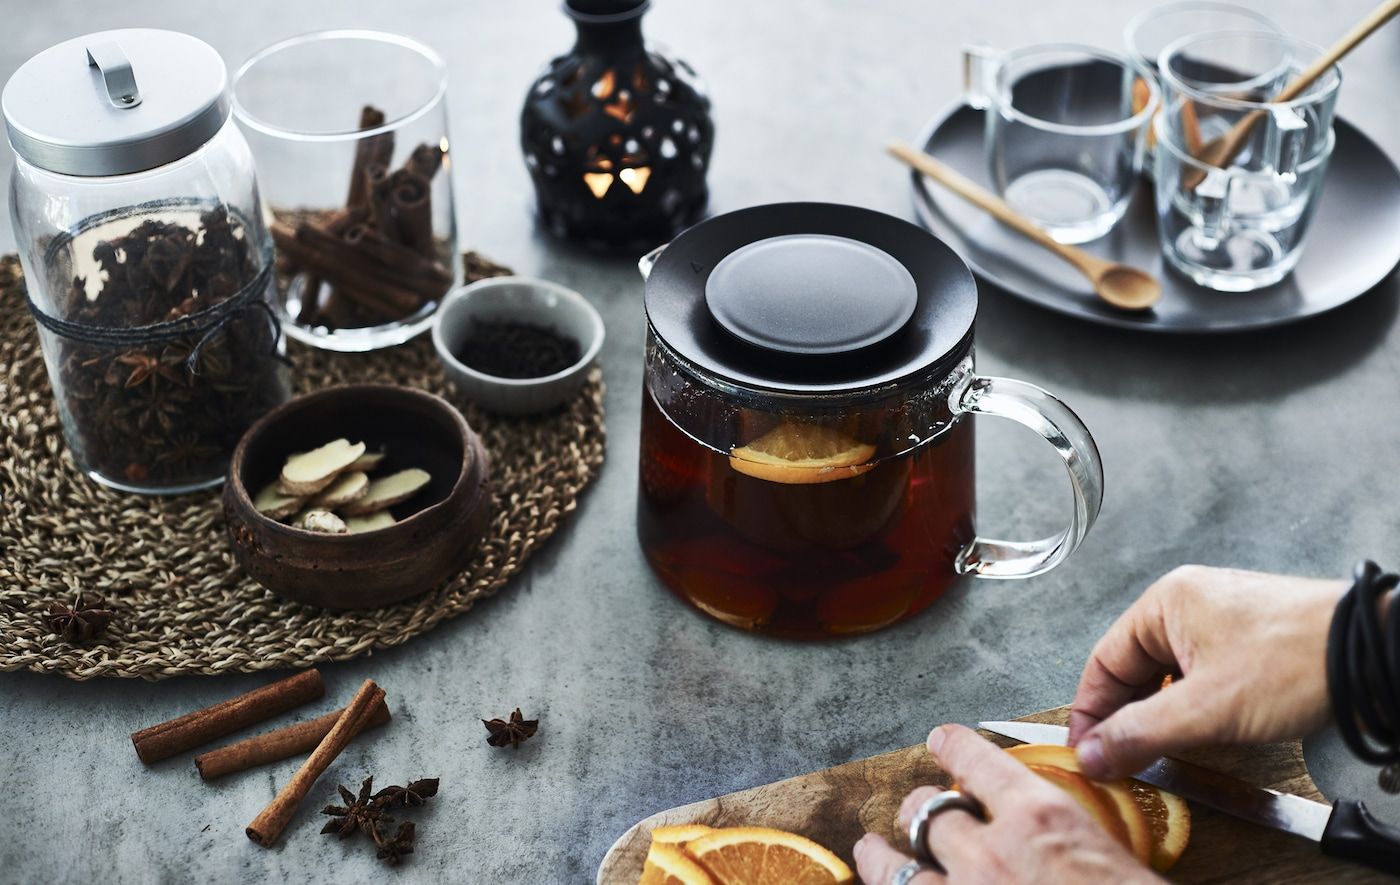 A pot of tea and jars of seasonal spices.